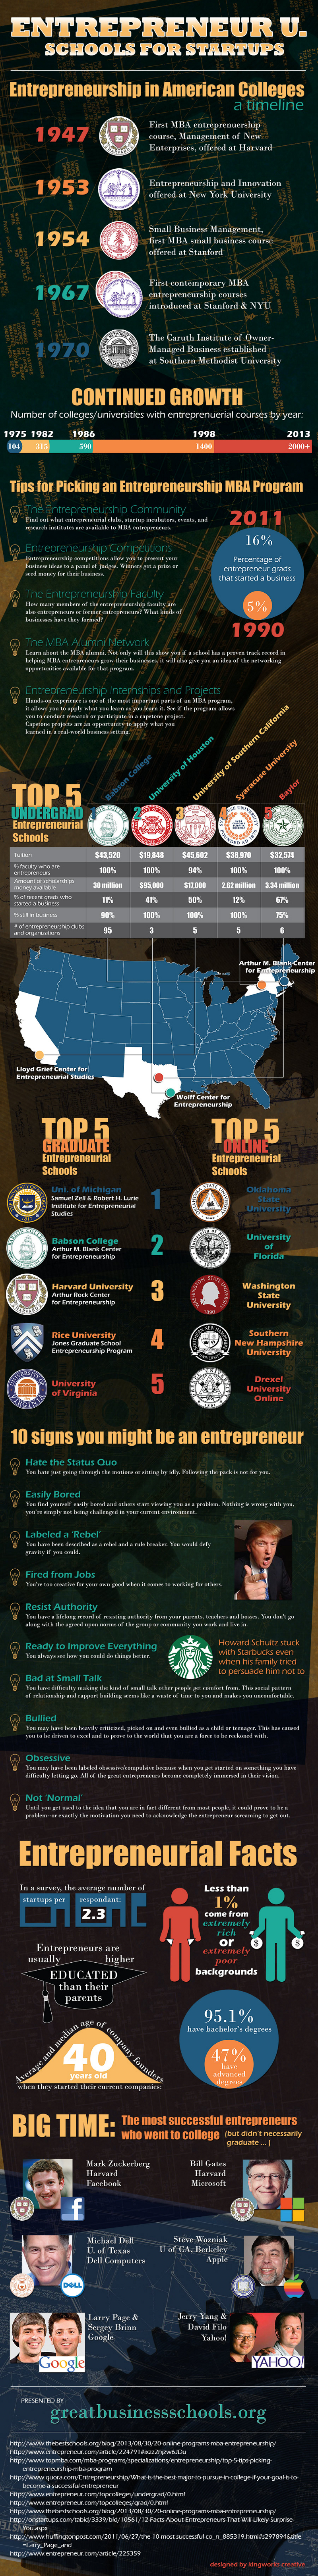 College-Entrepreneurship-Programs